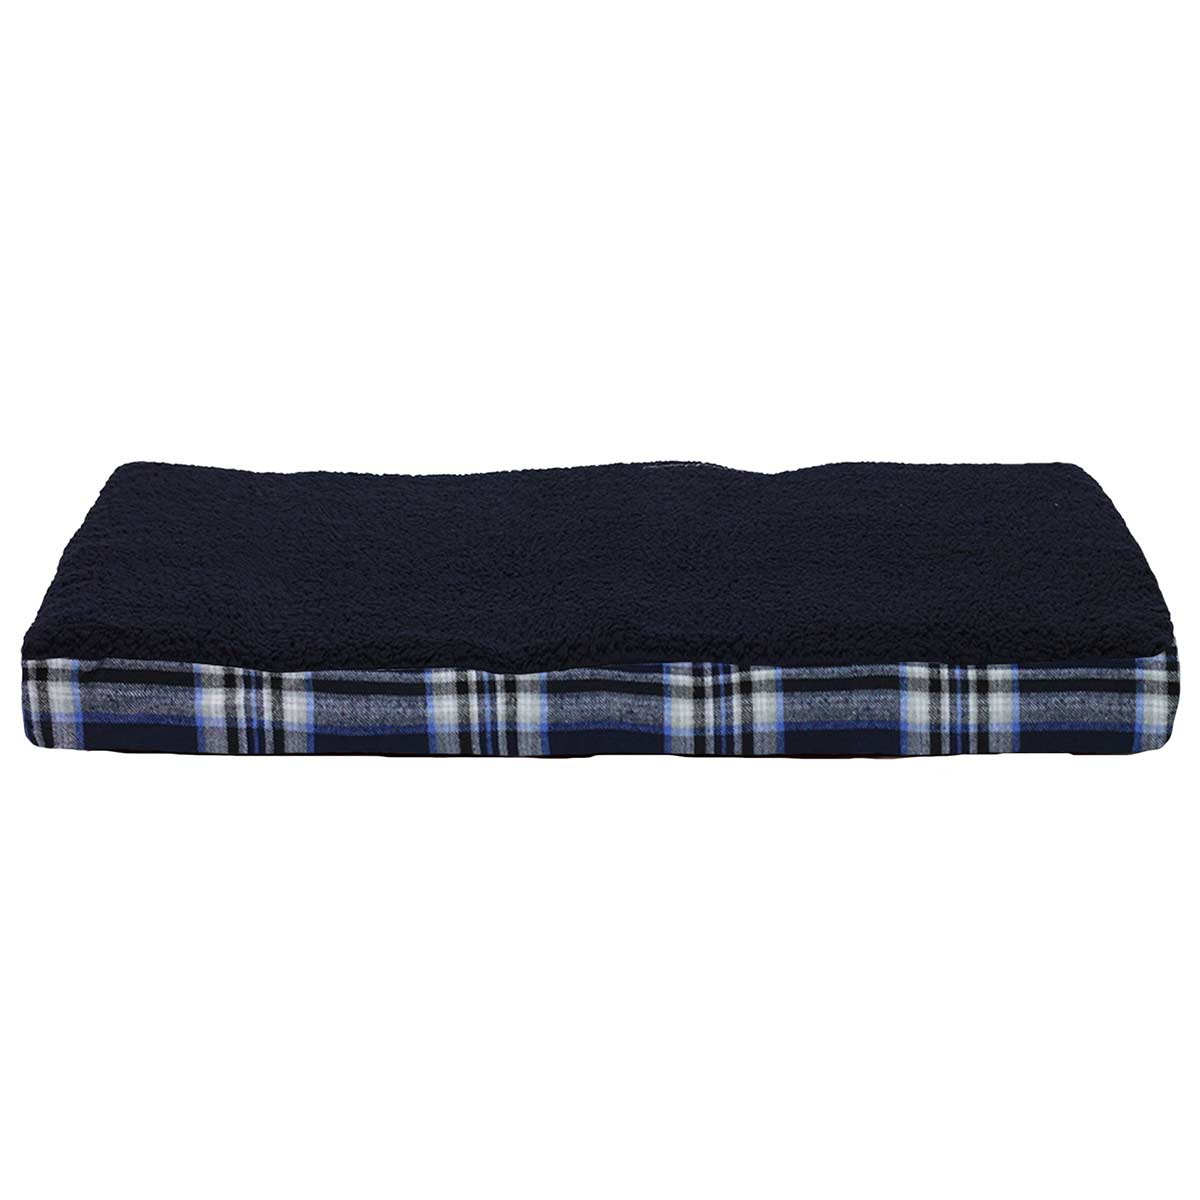 20 by 30 inches - FurHaven NAP Terry Top Deluxe Orthopedic Pet Bed with Memory Foam - Black and Plaid